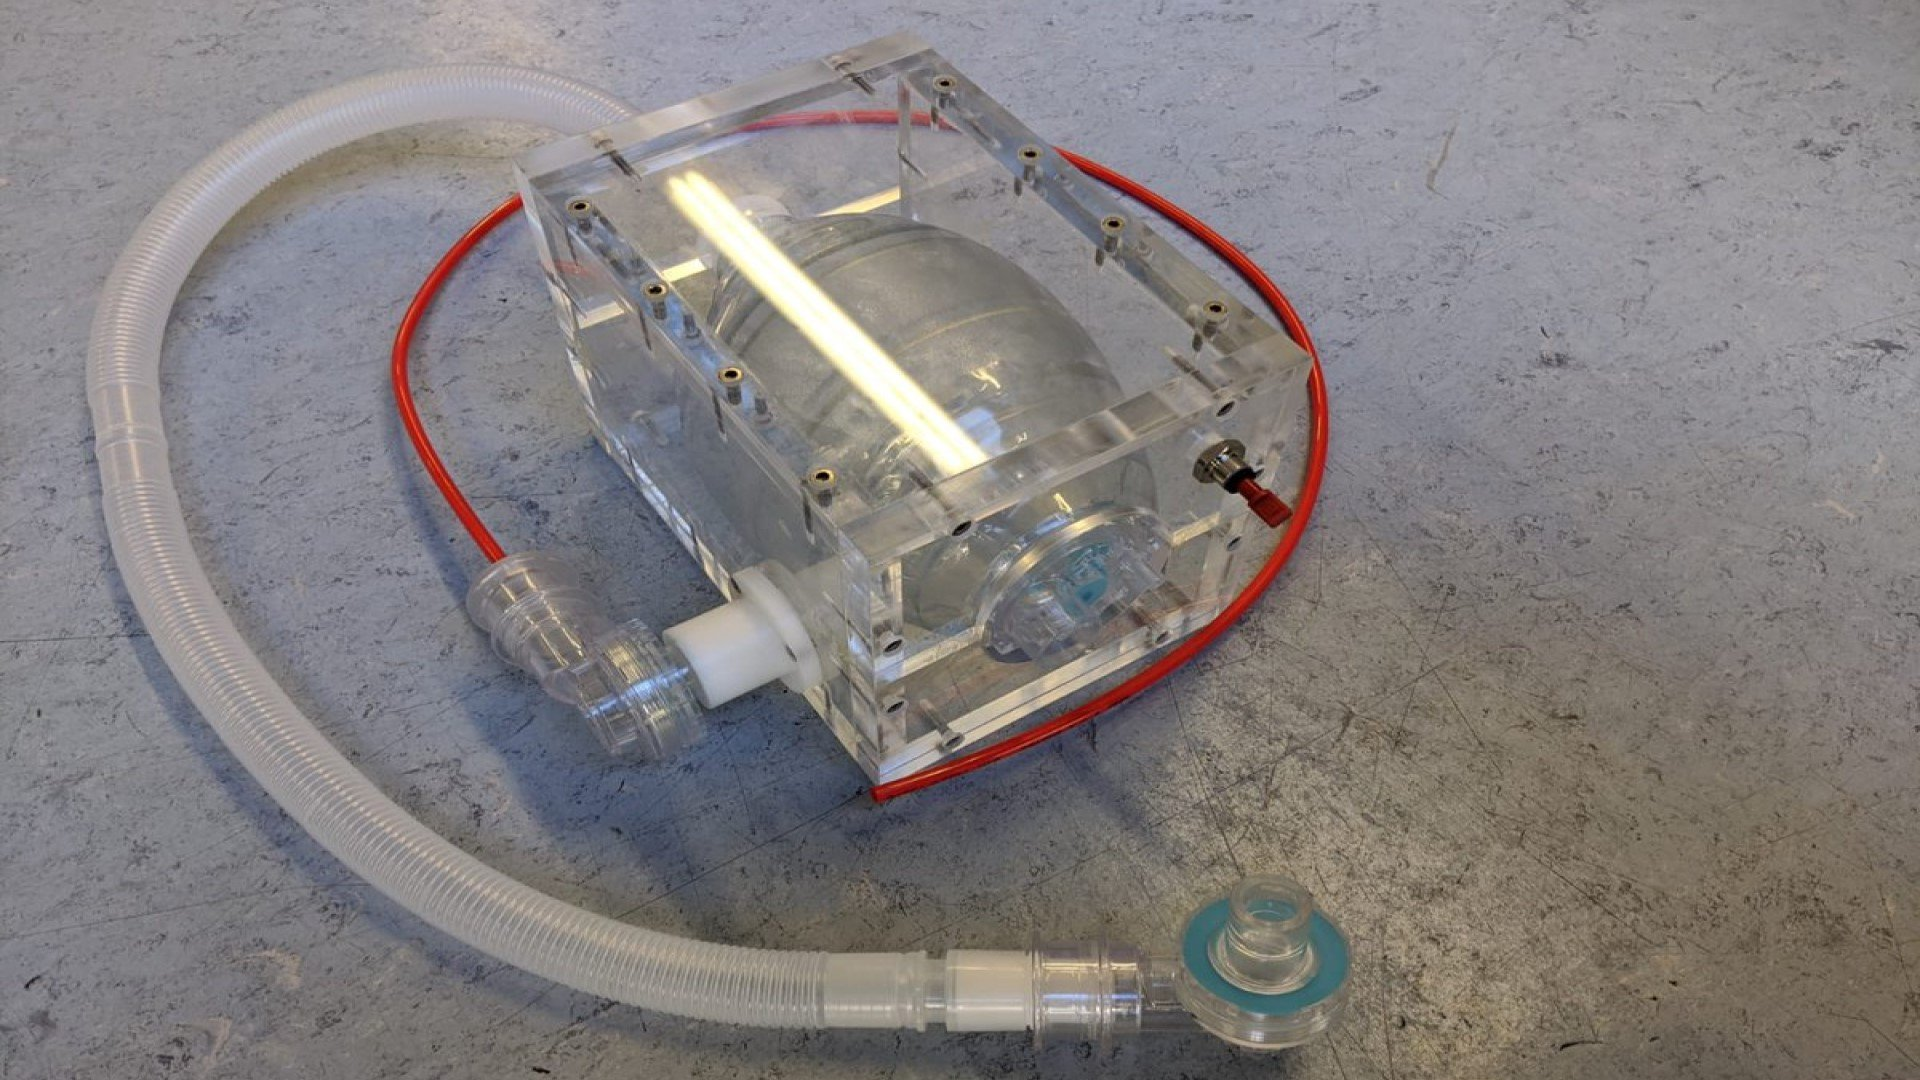 OxVent ventilator project to proceed to the next stage of testing